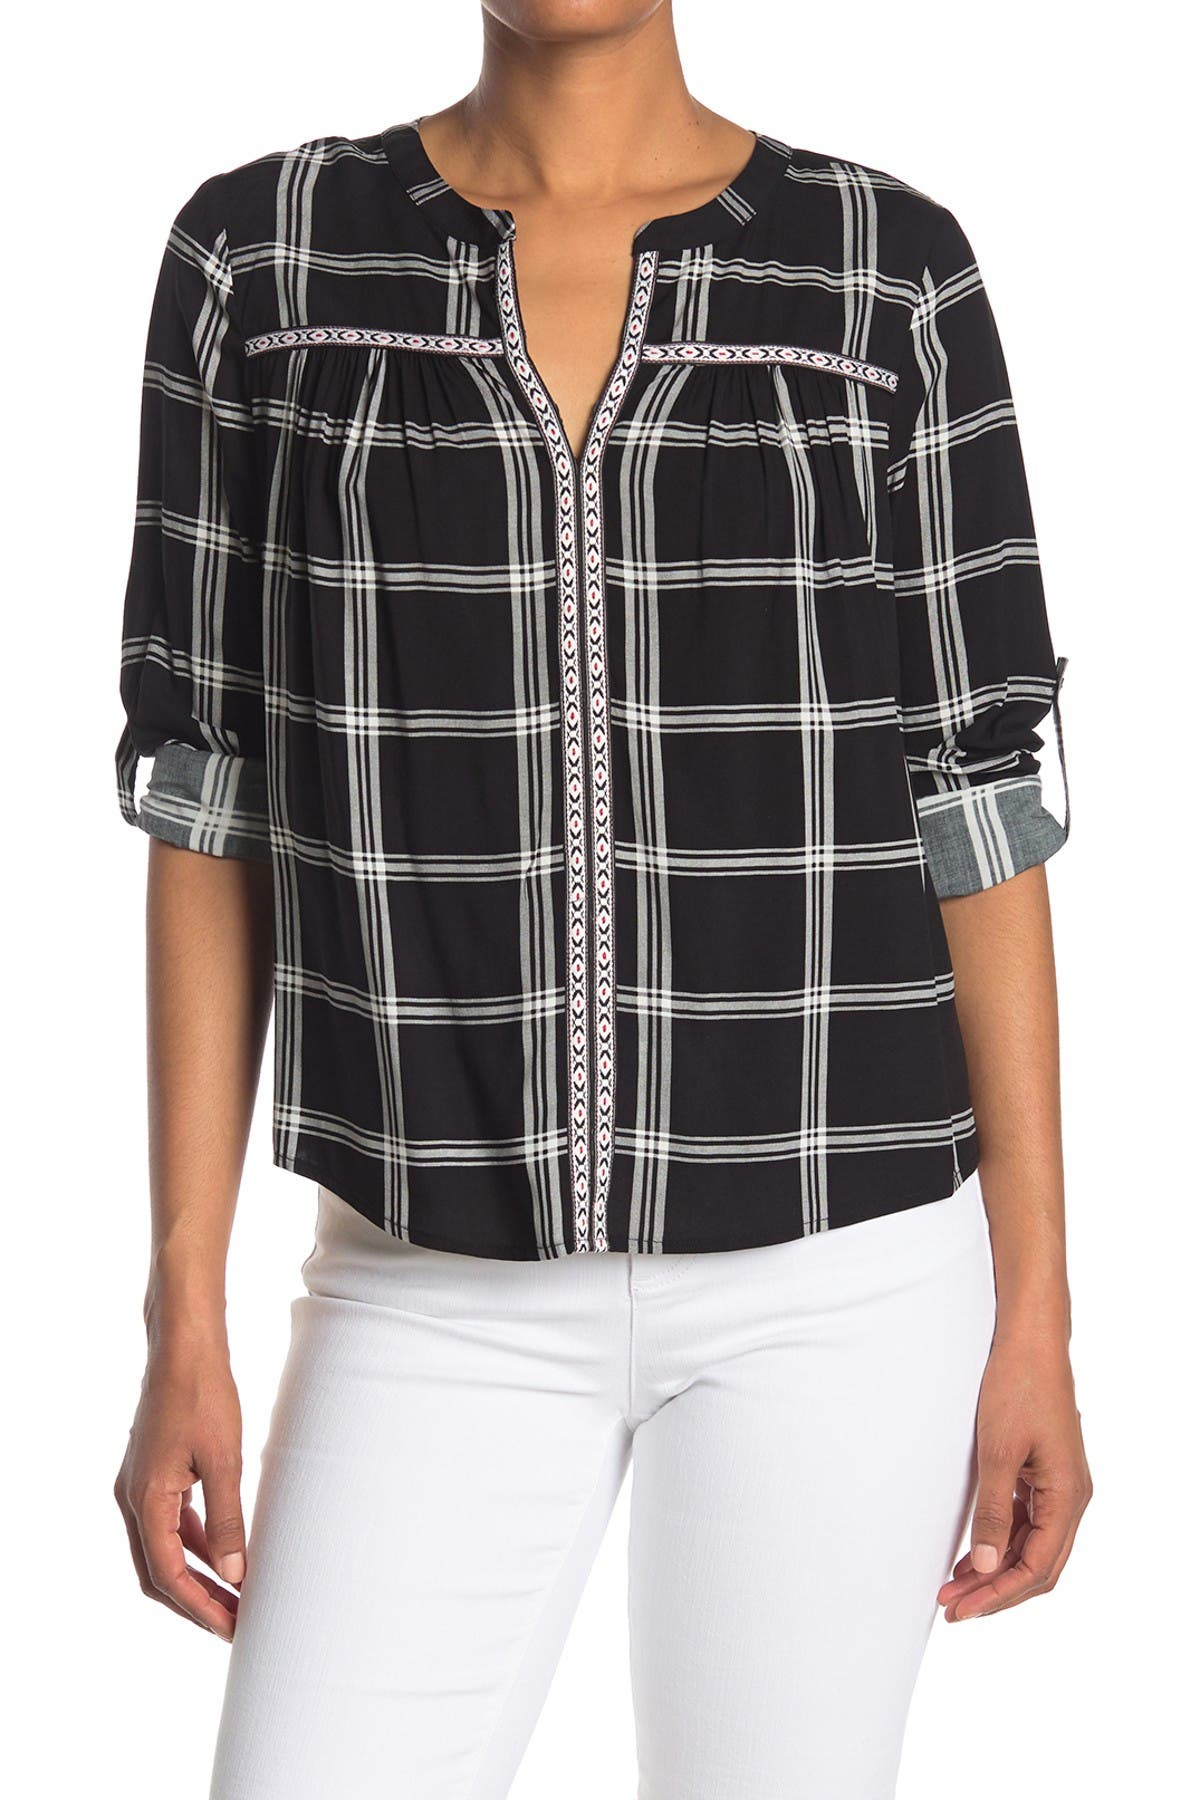 Image of DR2 by Daniel Rainn Window Pane Notched Quarter Sleeve Blouse